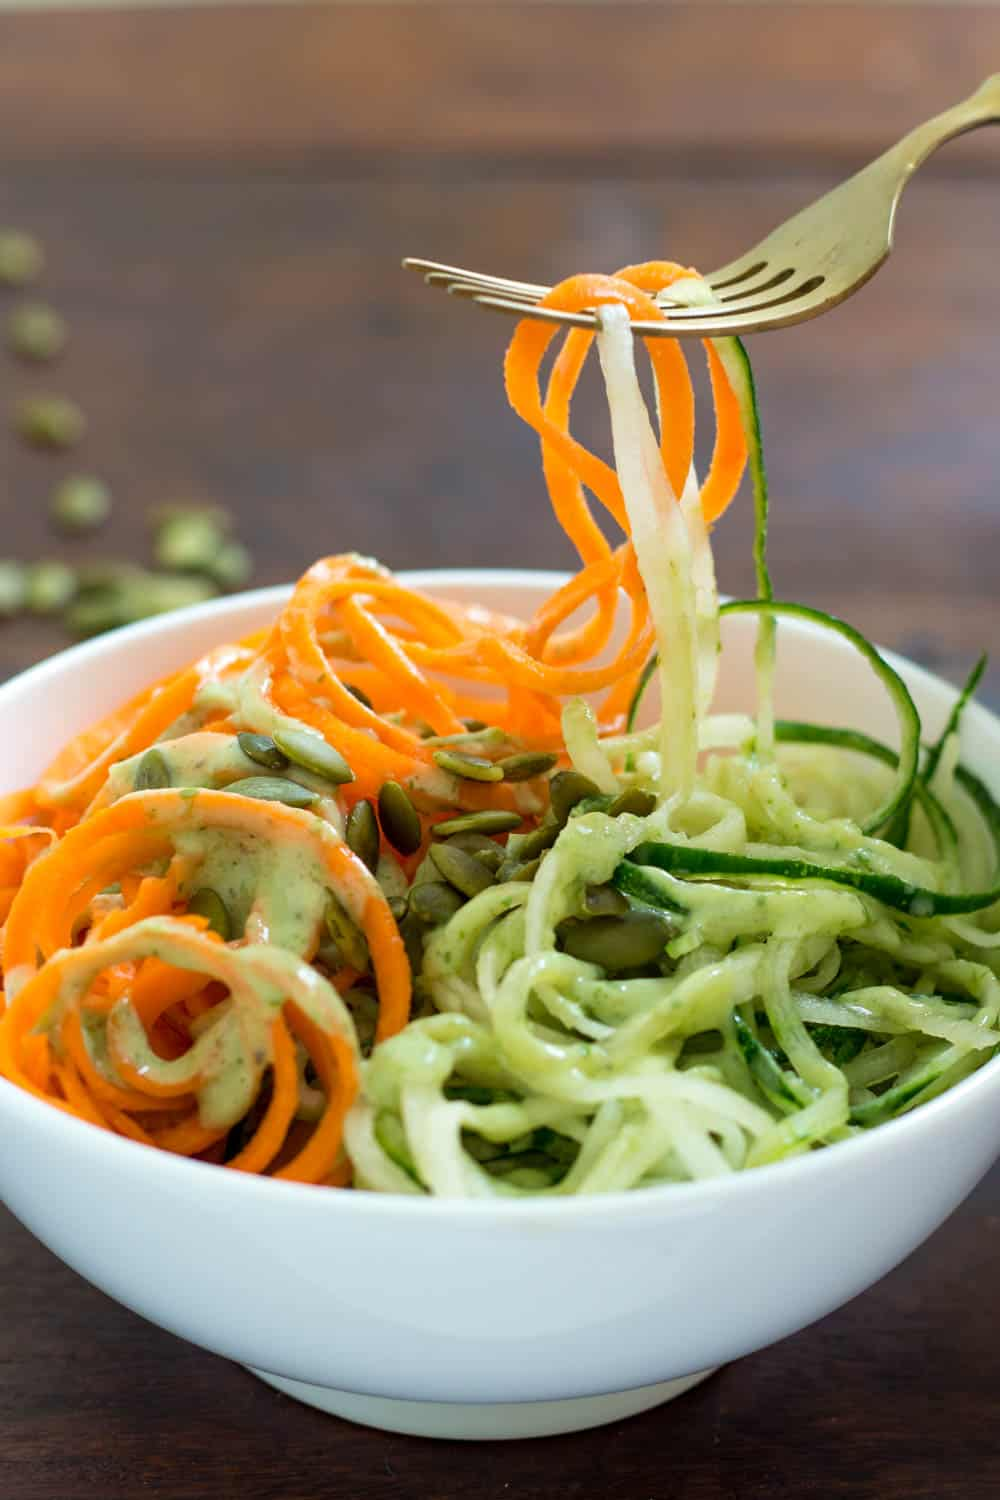 Noodles Salad with Carrots